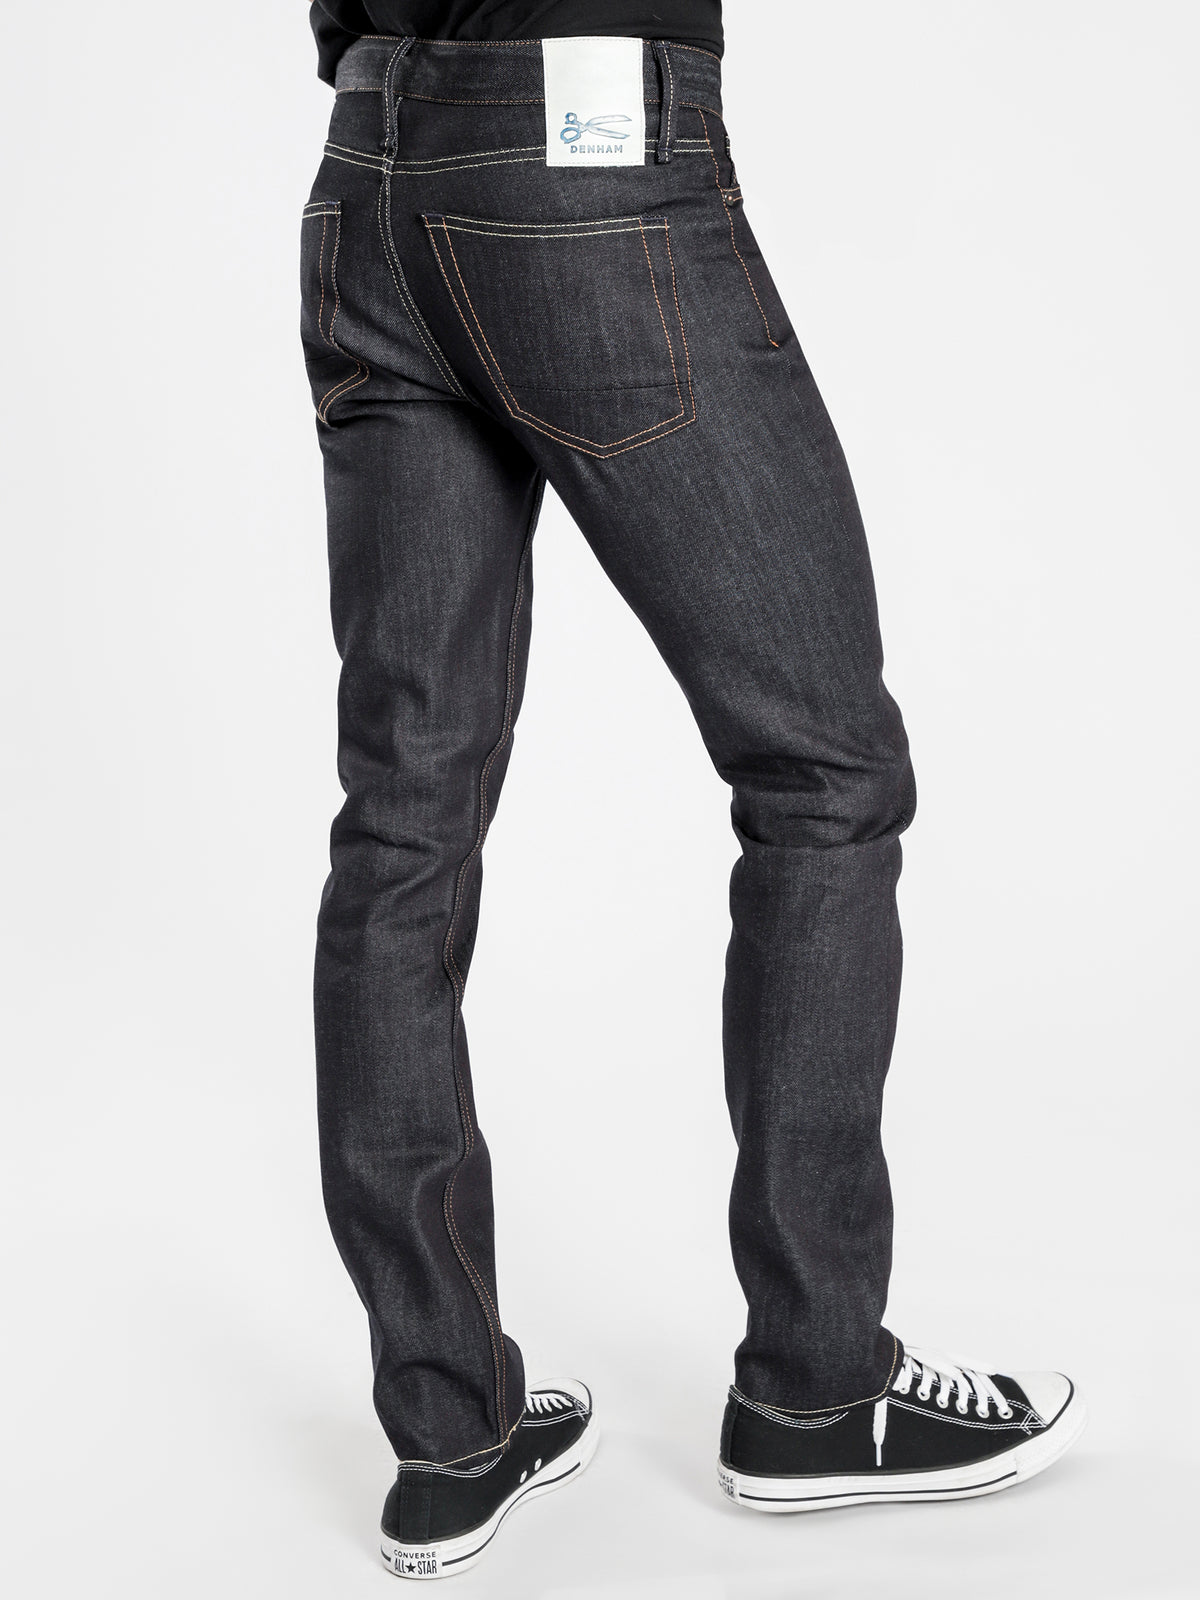 Razor Slim Virgin Jeans in VCSS Blue Denim